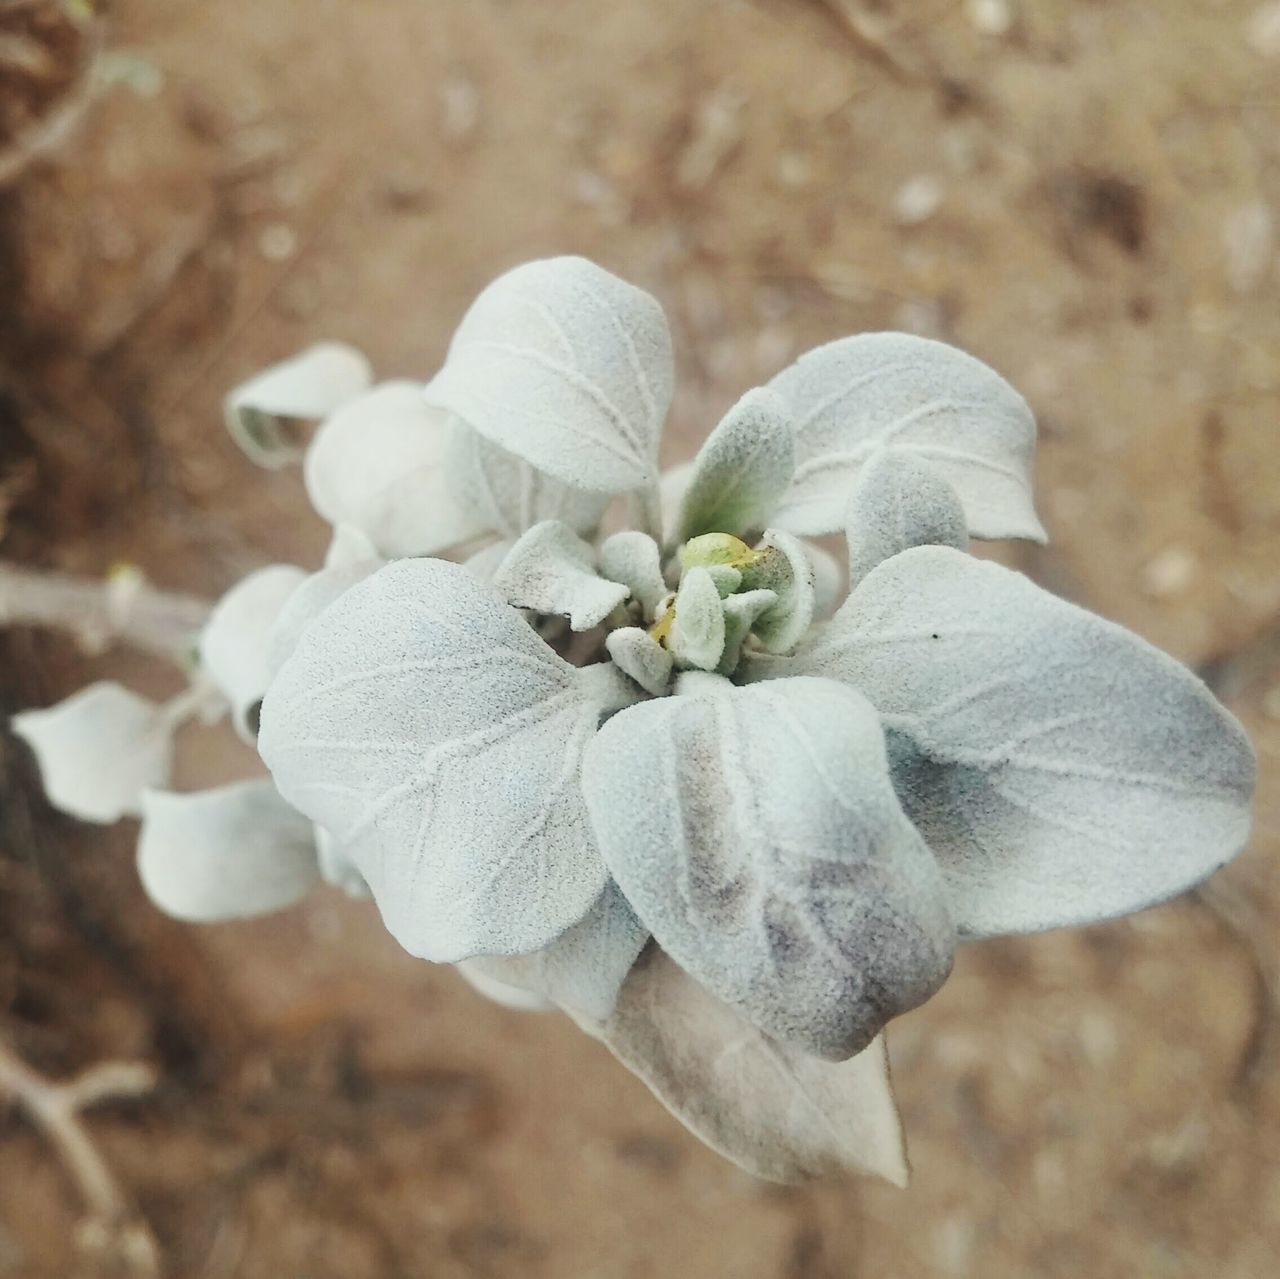 nature, flower, beauty in nature, plant, growth, petal, no people, close-up, fragility, blooming, flower head, day, outdoors, freshness